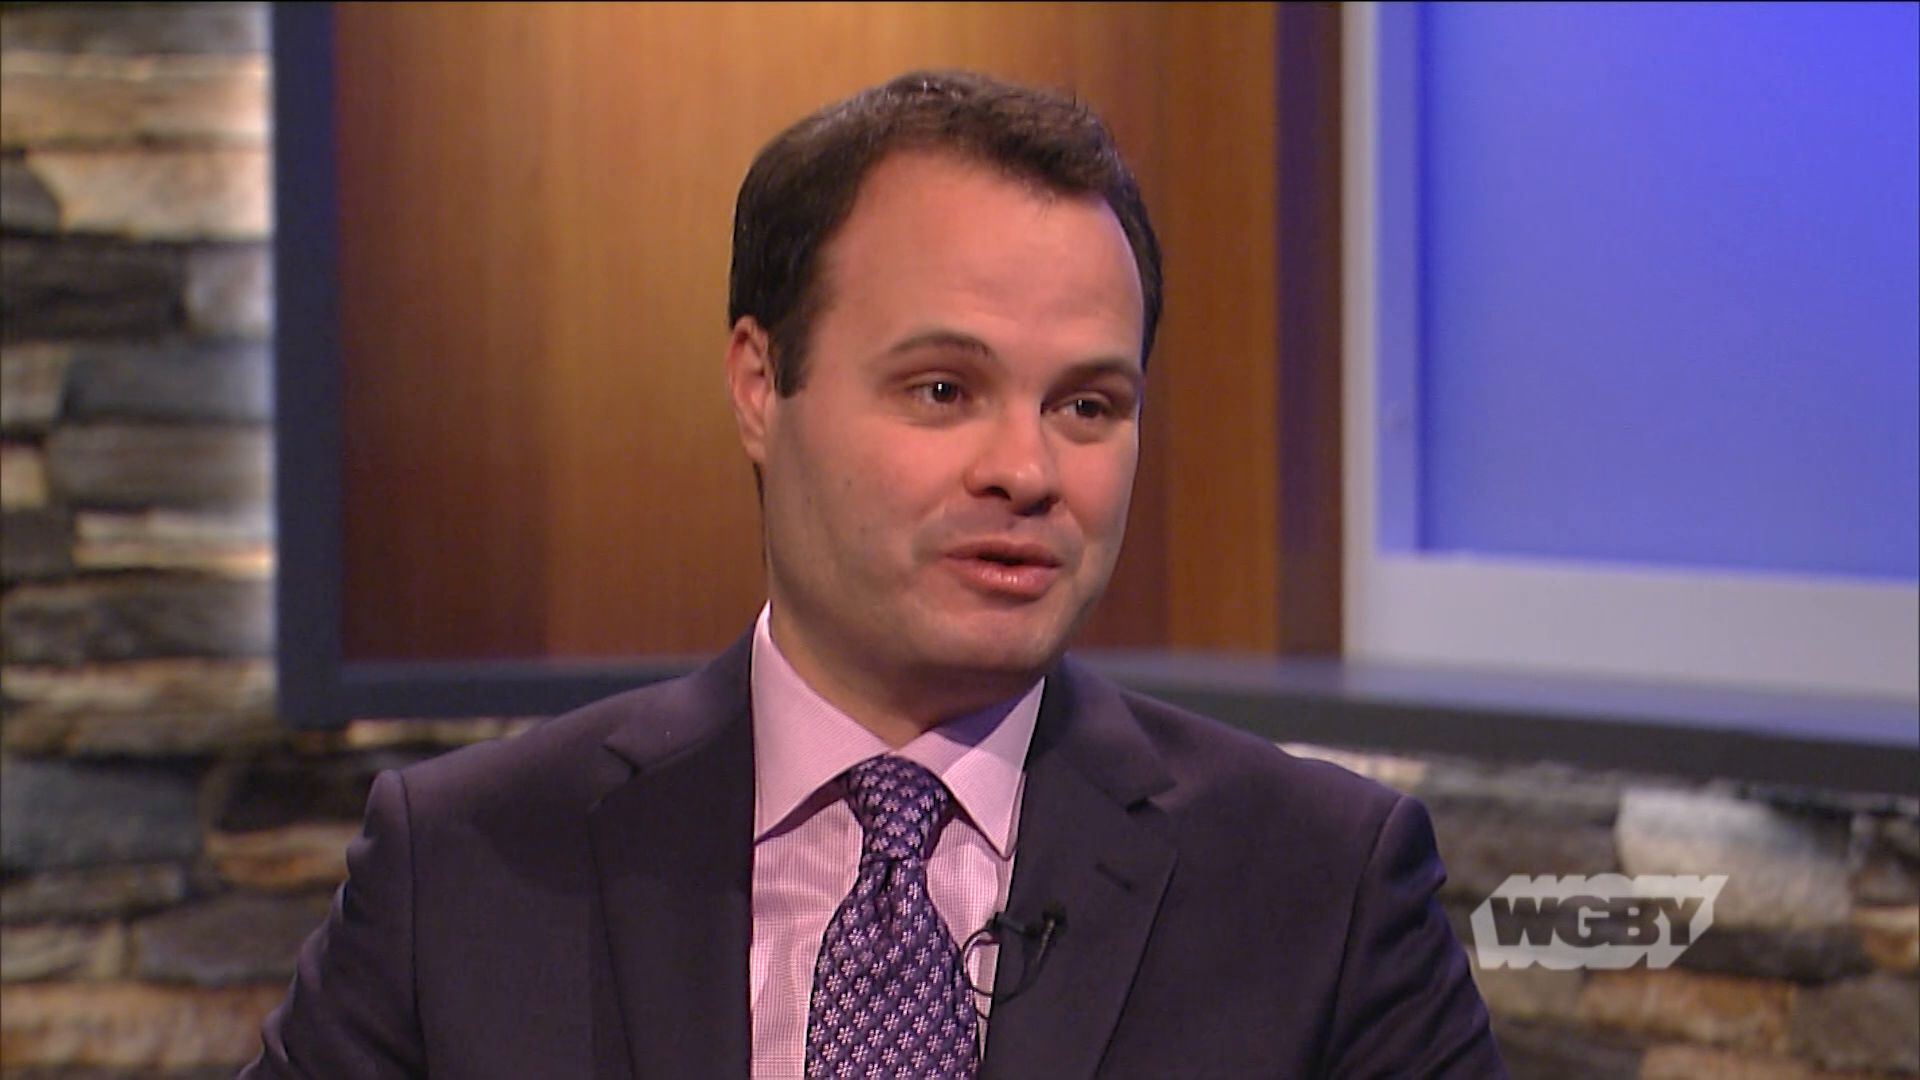 The western Mass job relocation bill proposed by Sen. Eric Lesser would reimburse workers up to $10,000 if they relocate to western Mass and work remotely.